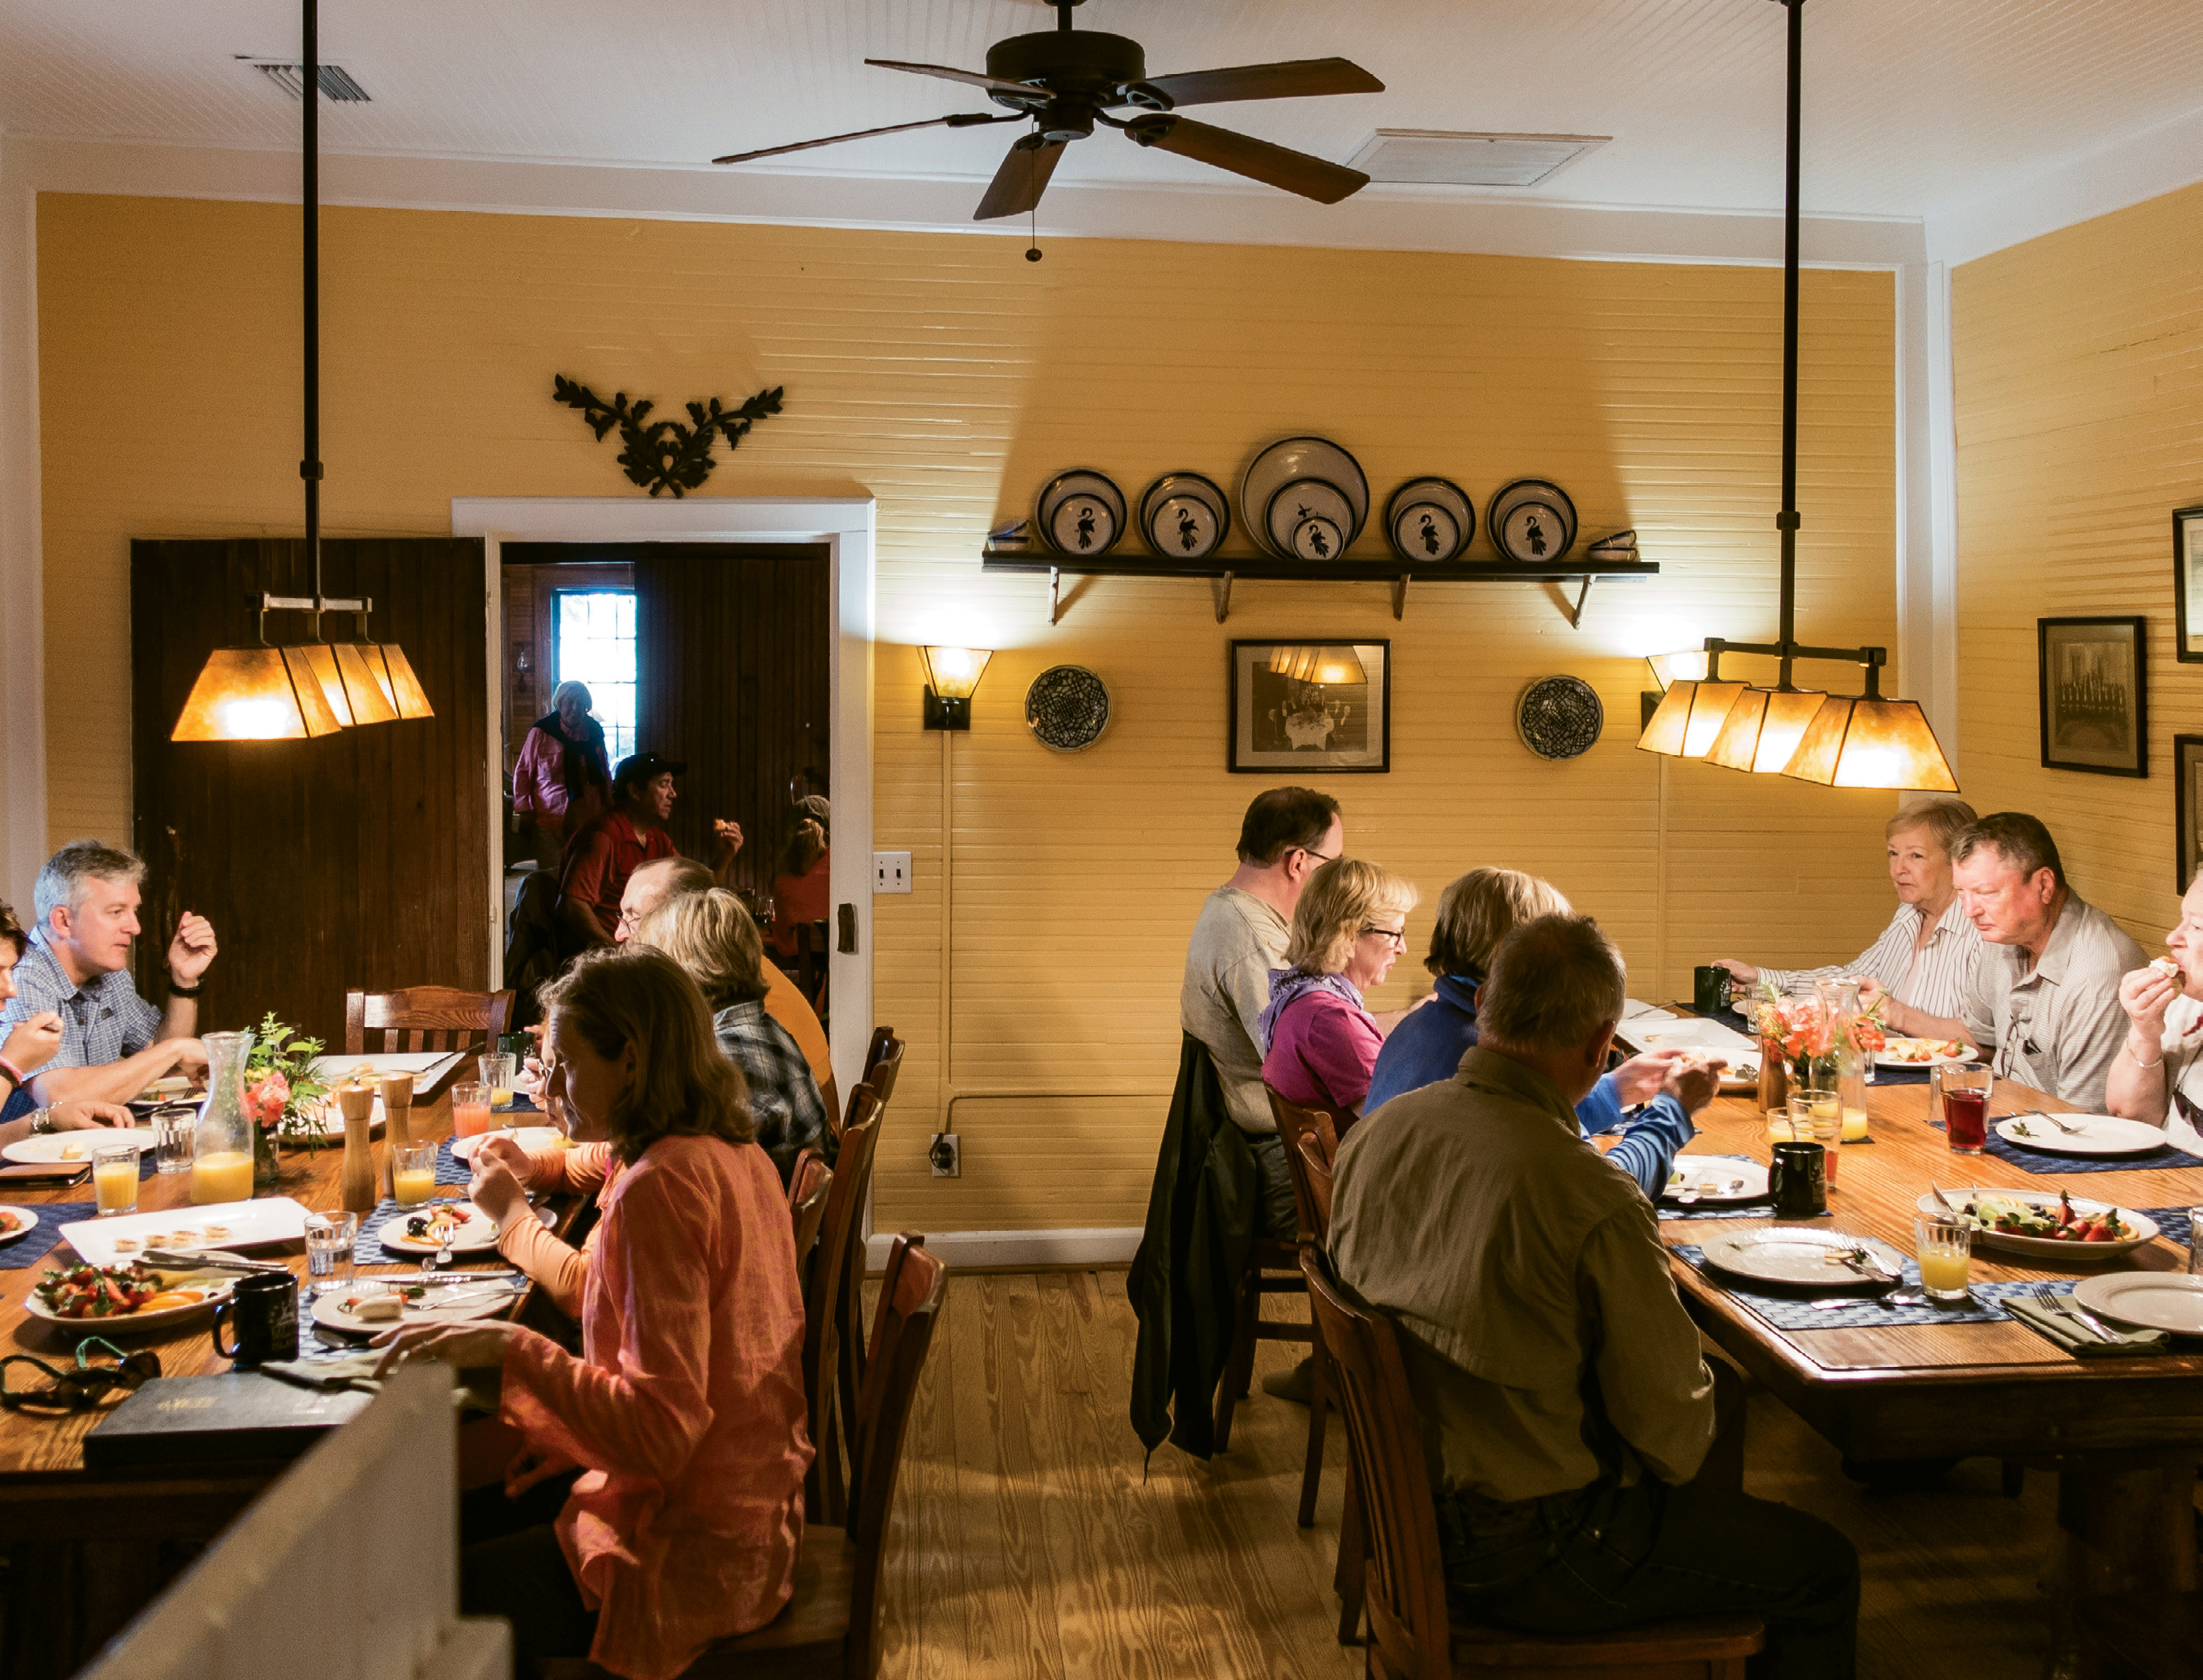 Family-style dining at the lodge.